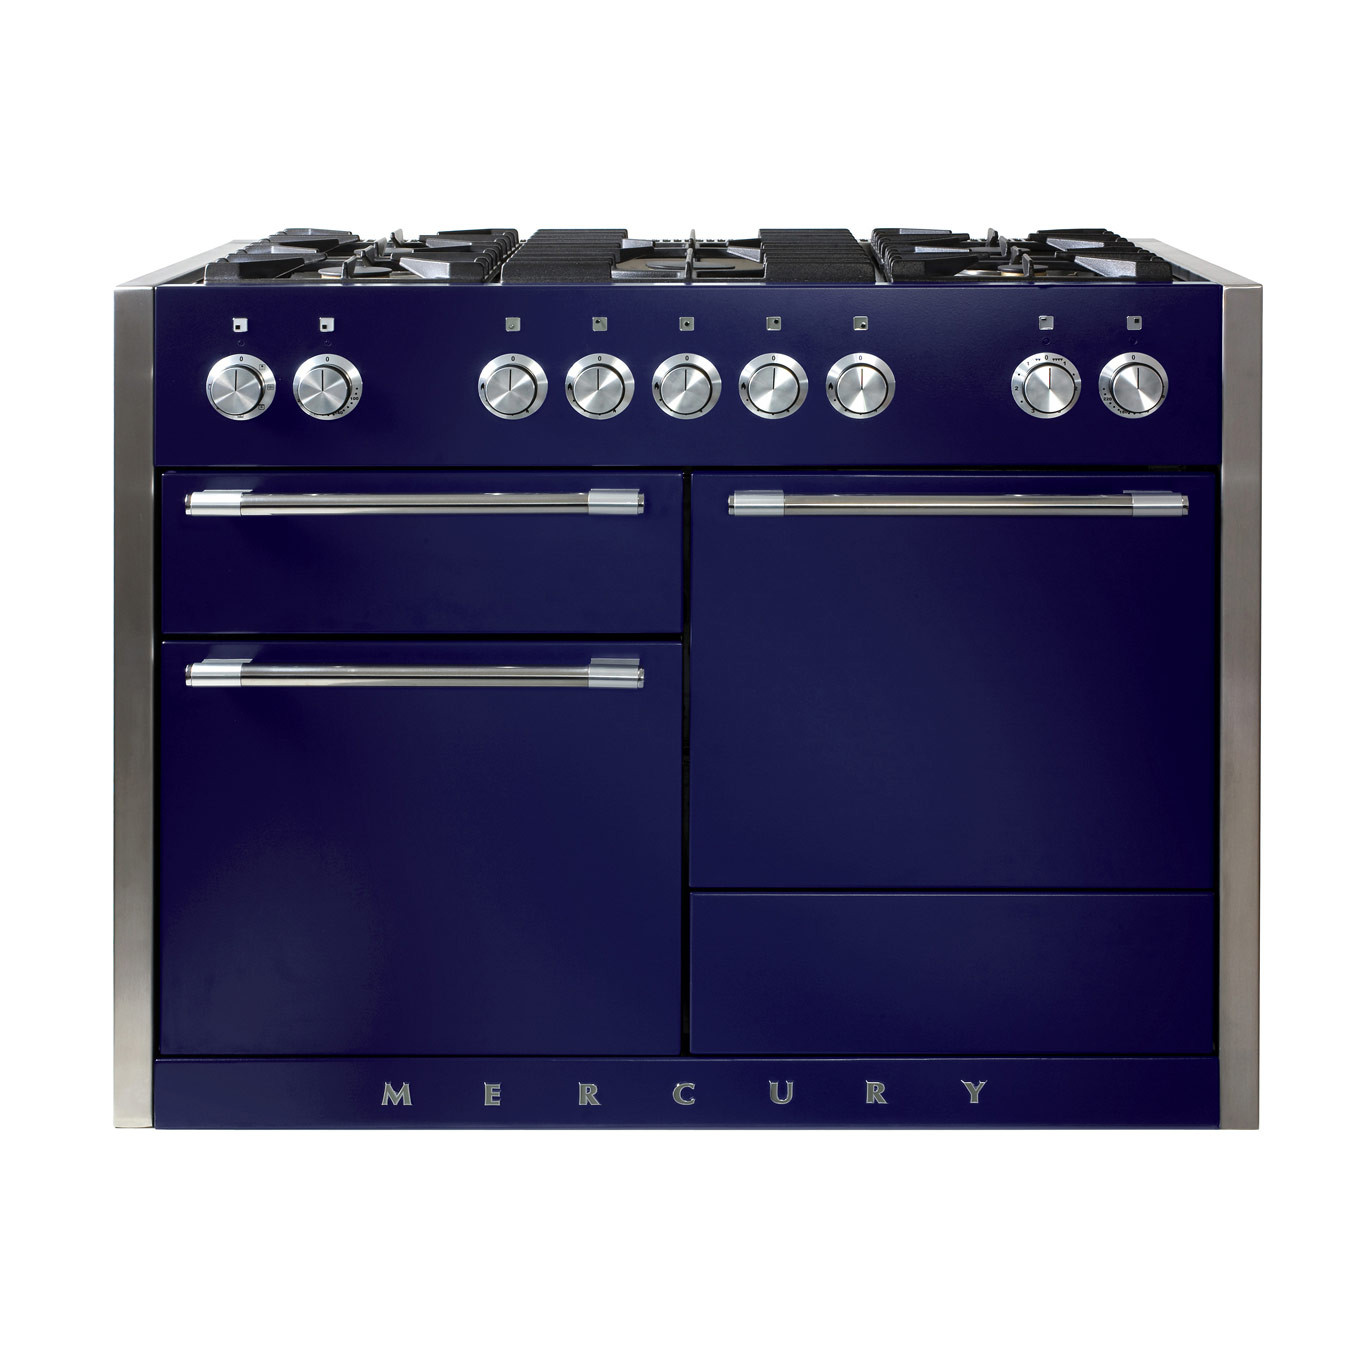 Mercury MCY1200DF Dual Fuel Blueberry Range Cooker